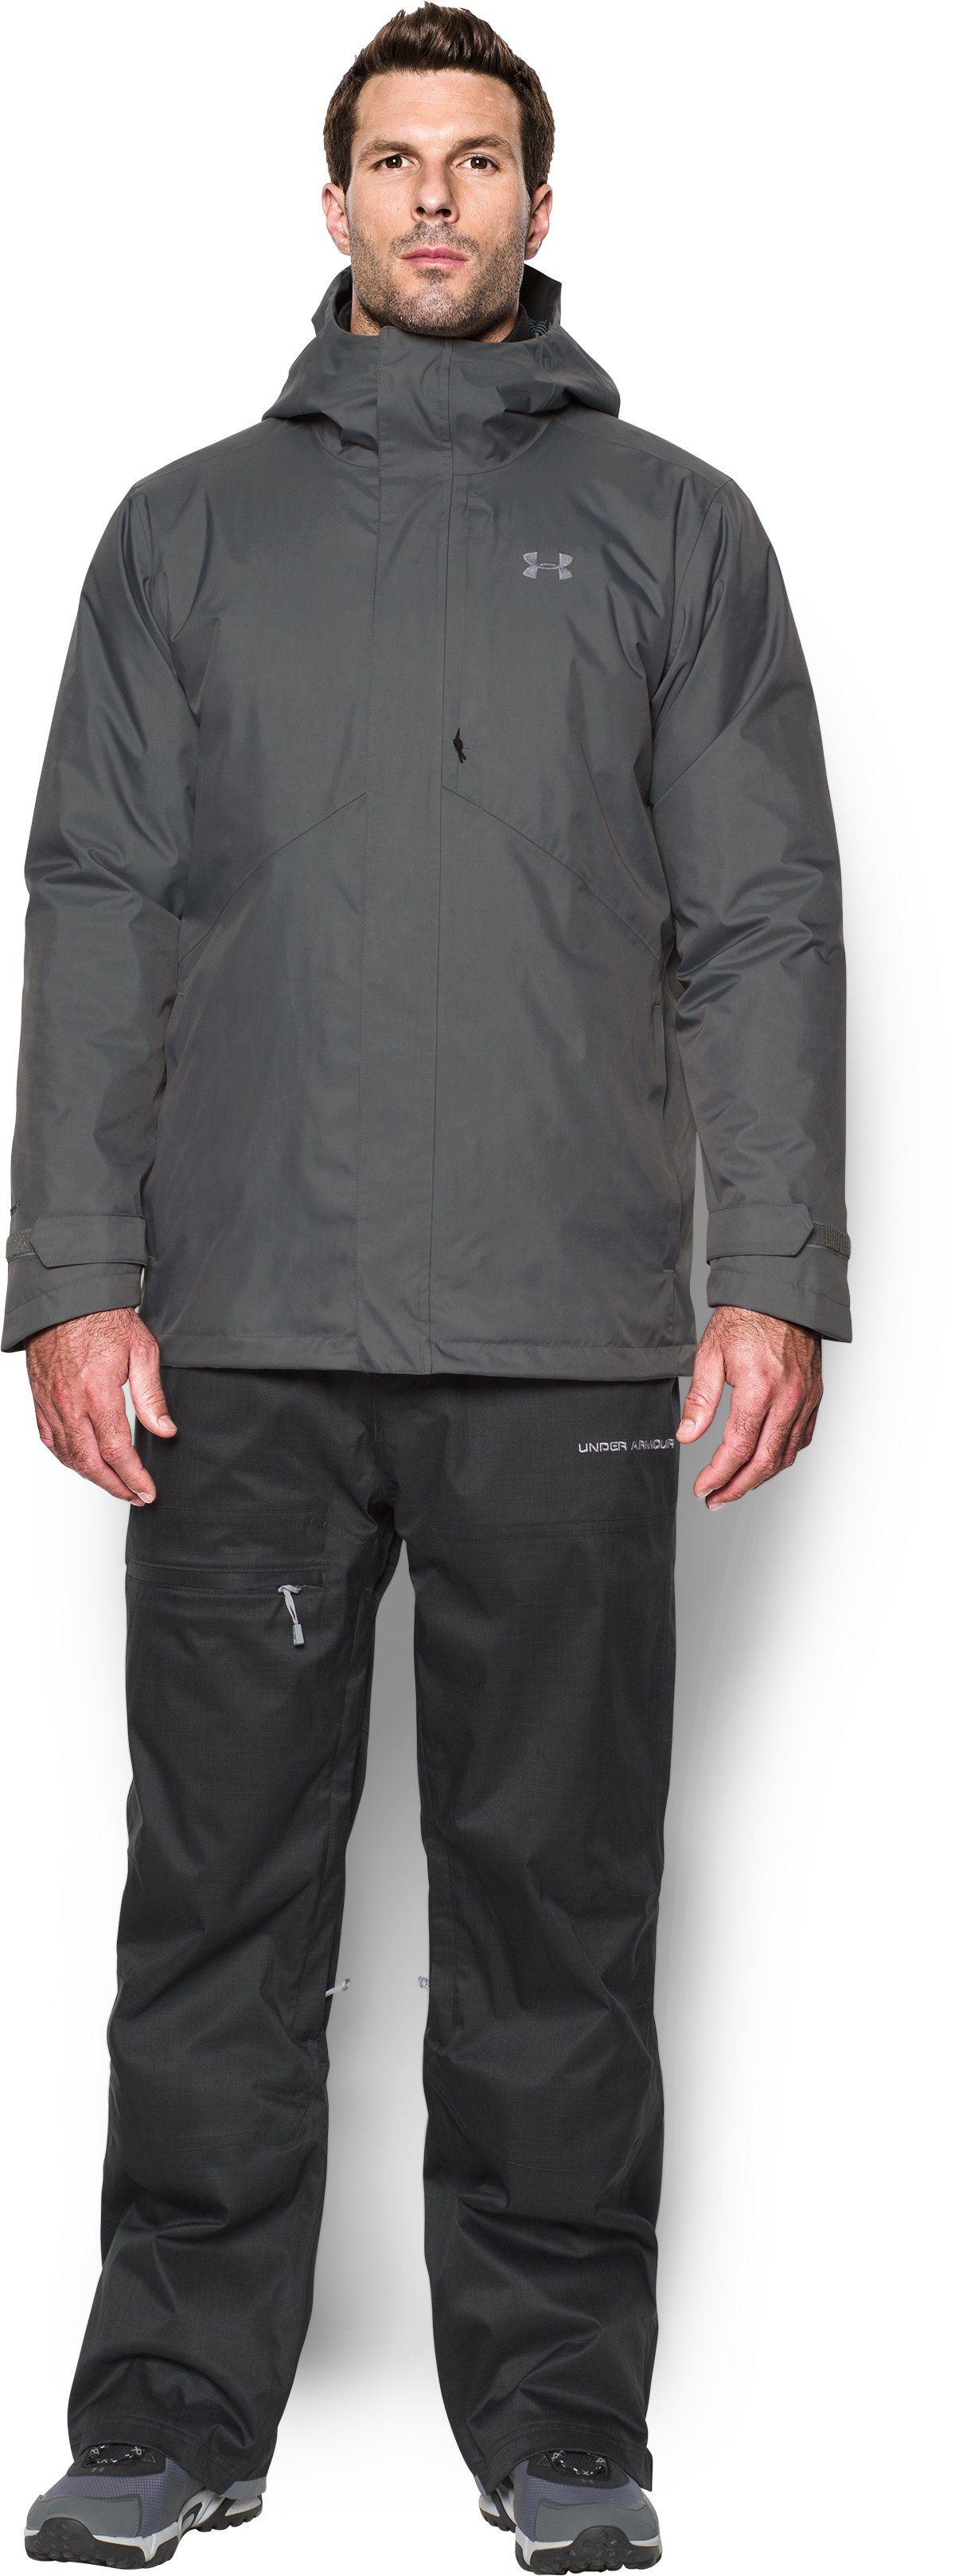 Men's ColdGear® Reactor Wayside 3-in-1 Jacket, Graphite